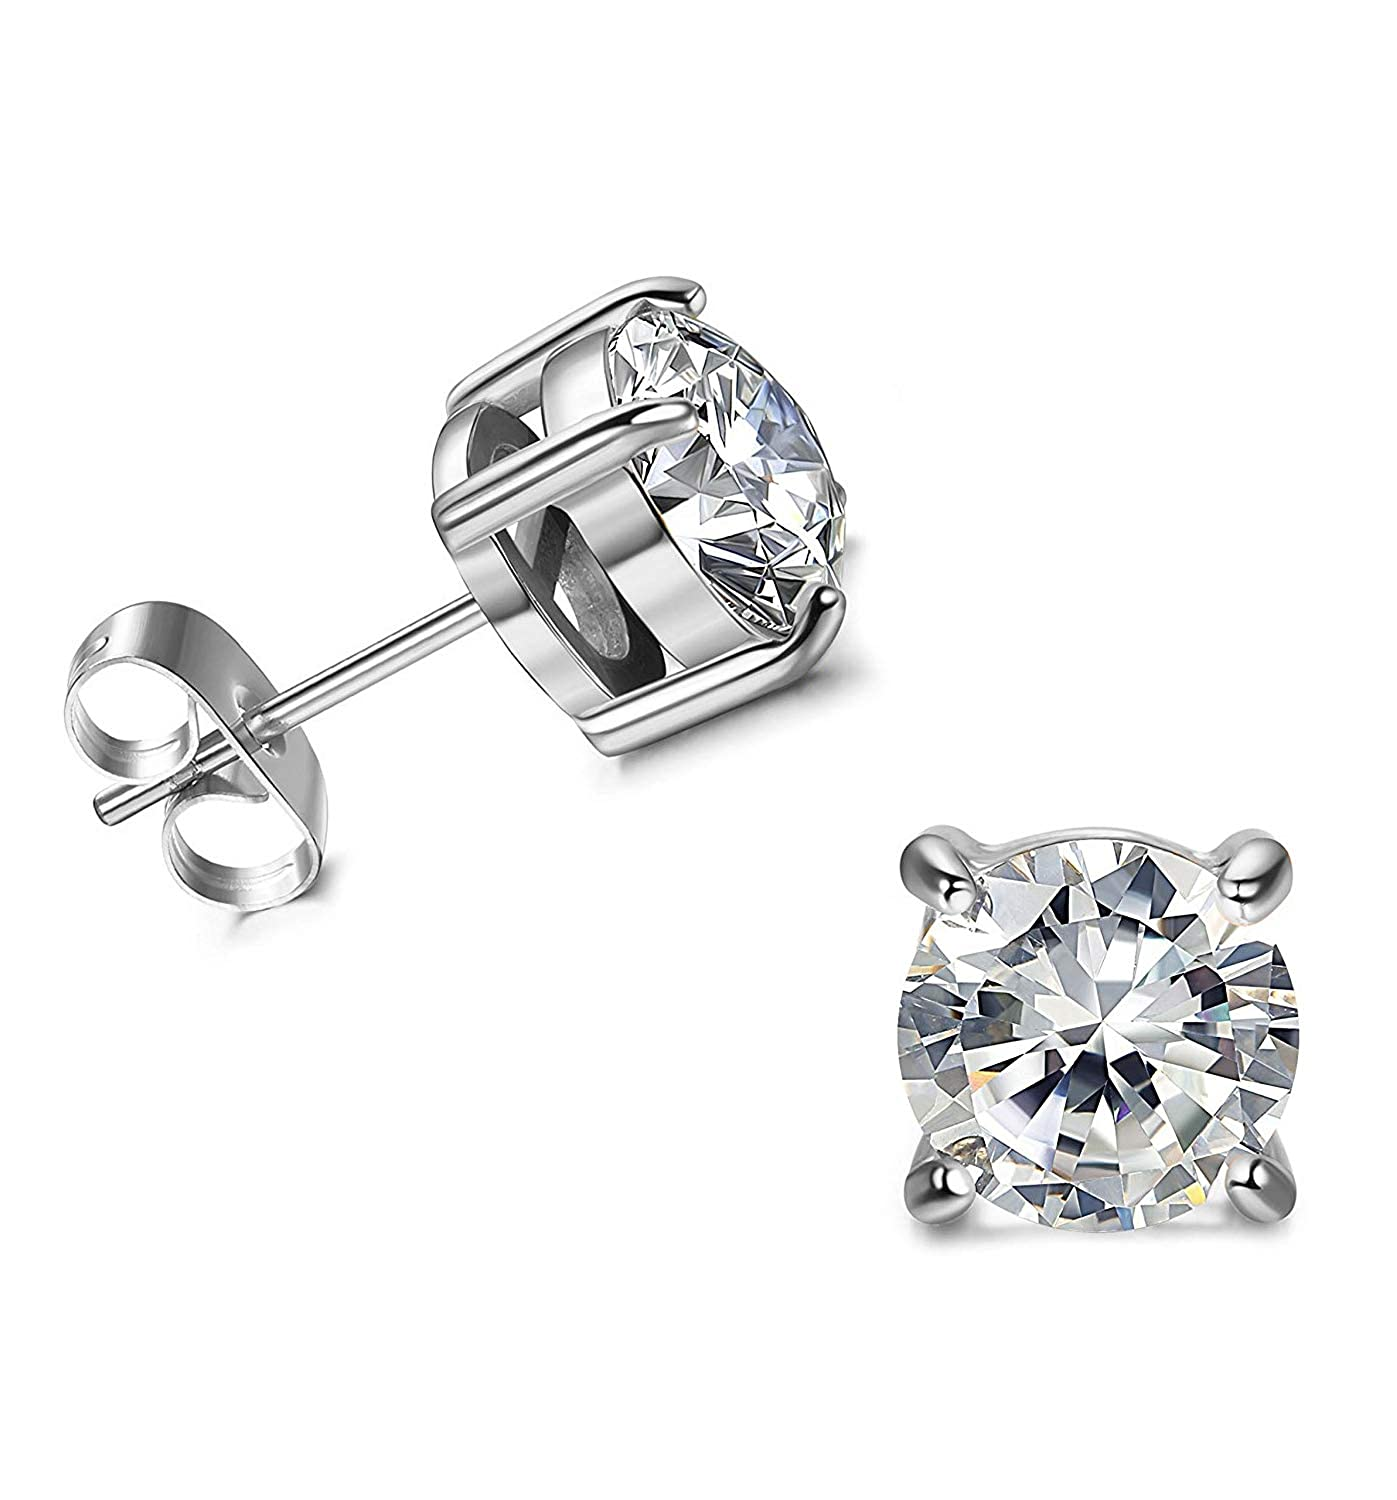 D//VVS1 Round Cut Diamond Fancy Party Wear Solitaire Stud Earrings 18K White Gold Over .925 Sterling Silver For Womens /& Girls 3MM TO 10MM